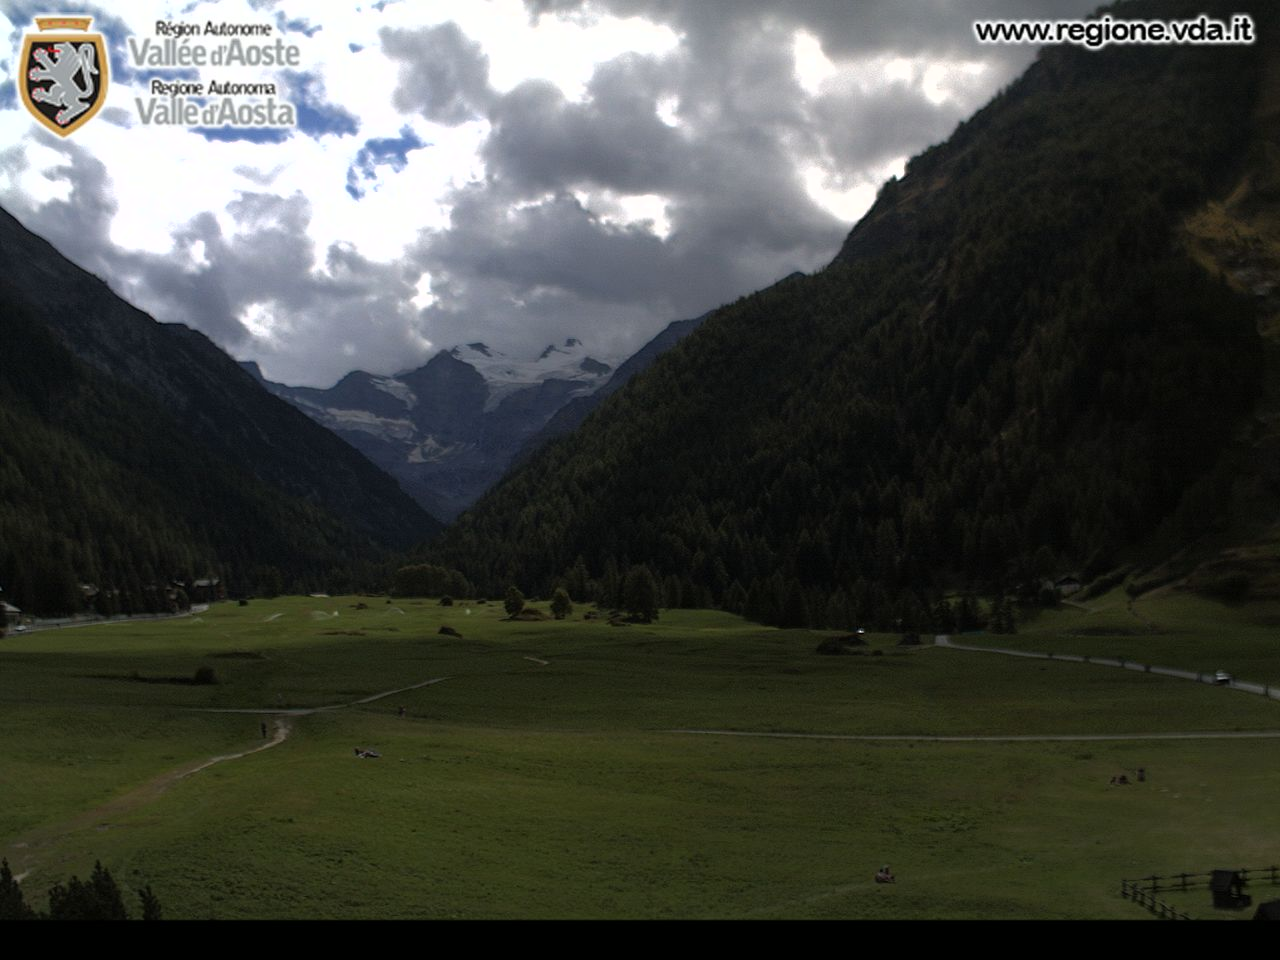 Gran Paradiso National Park Webcam - Cogne, Aosta Valley